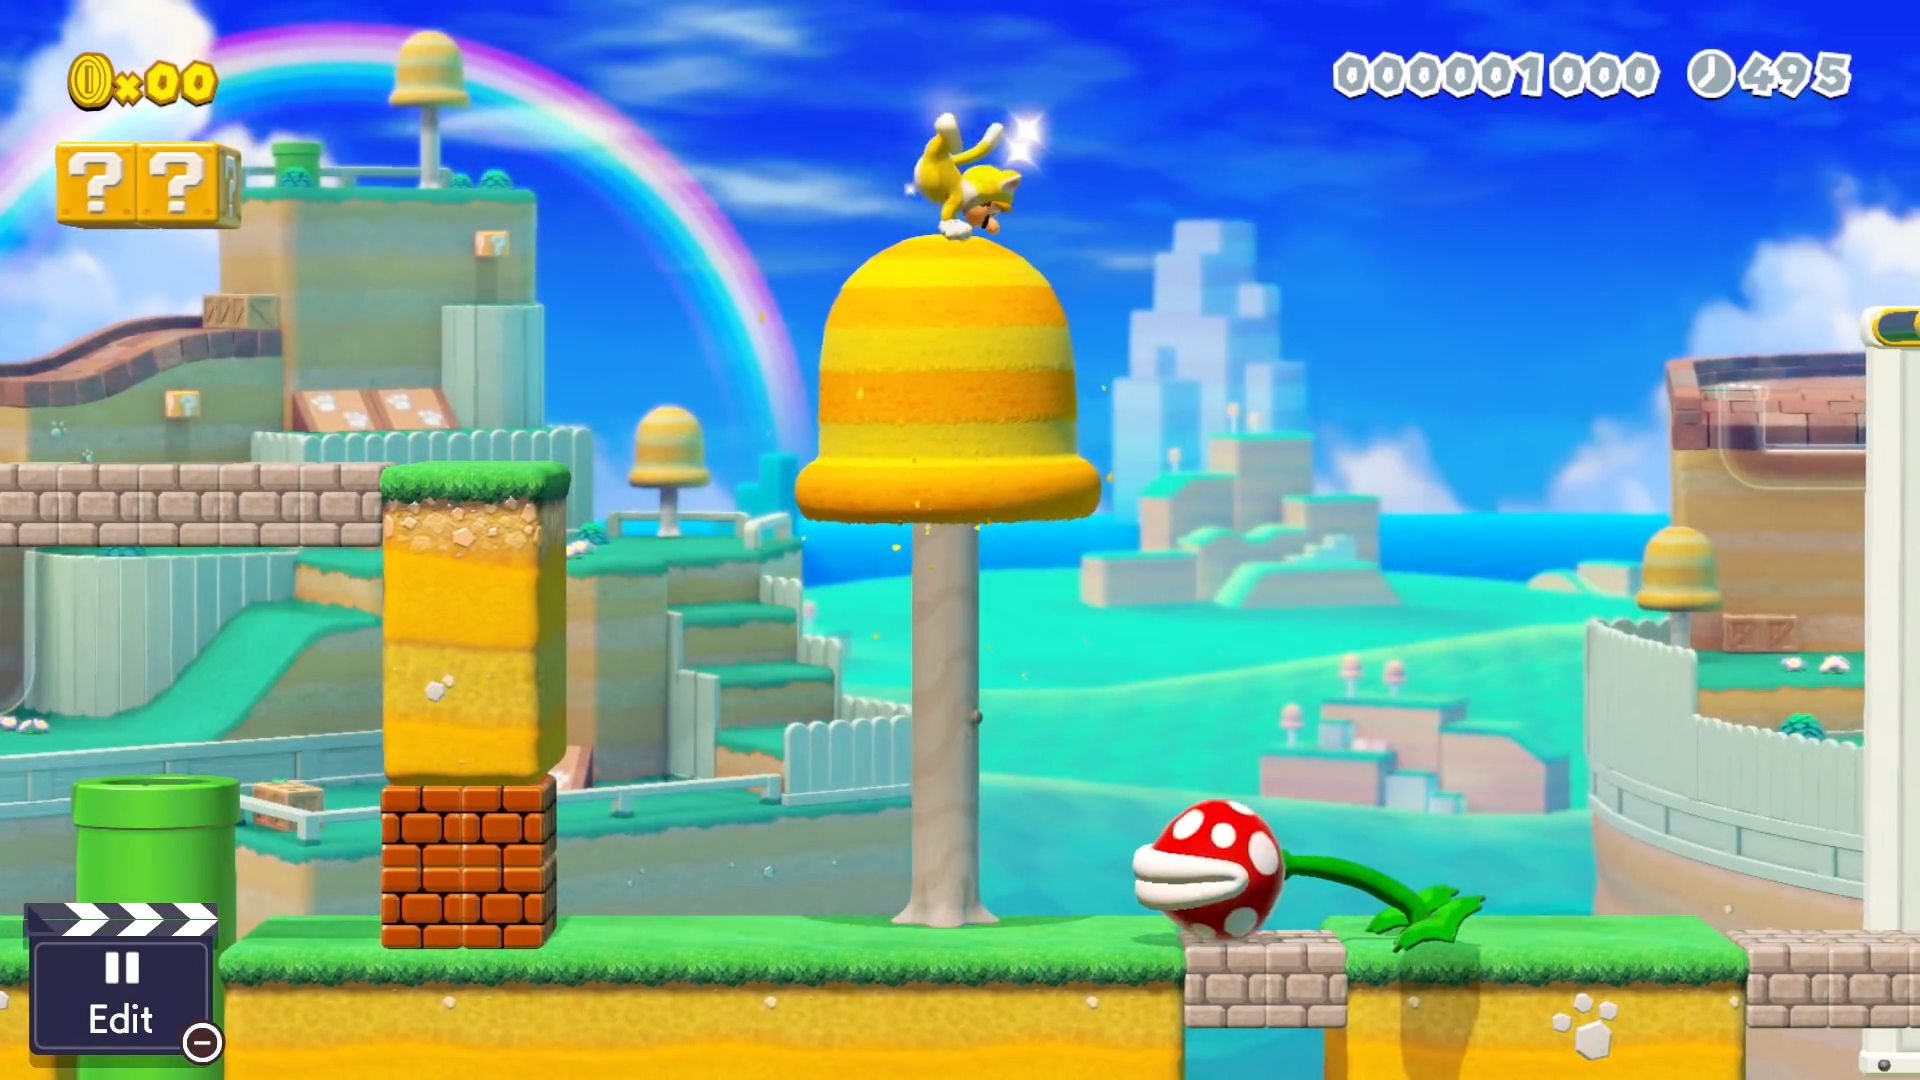 You can now create levels in the Super Mario 3D World style